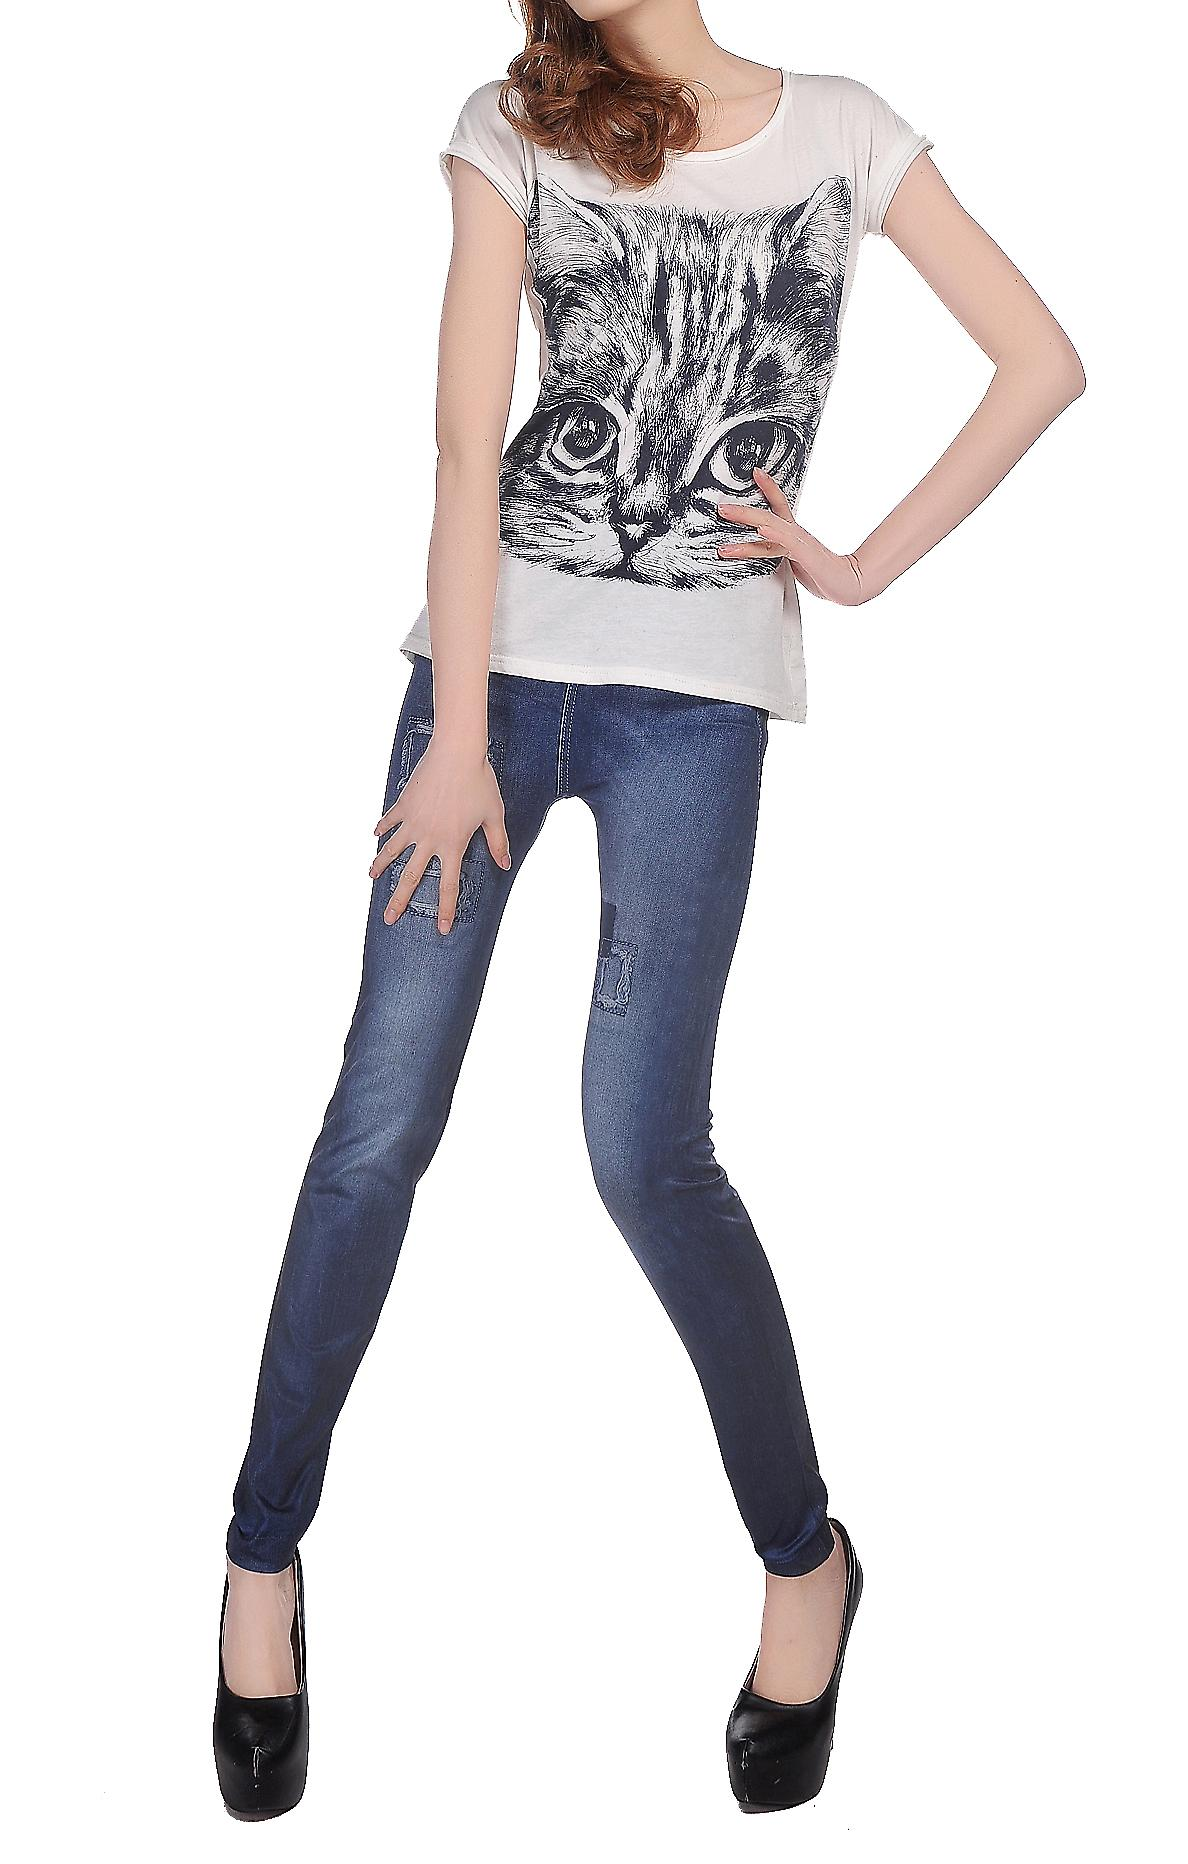 Waooh - Fashion - Leggings and jeans effect inserts sewn